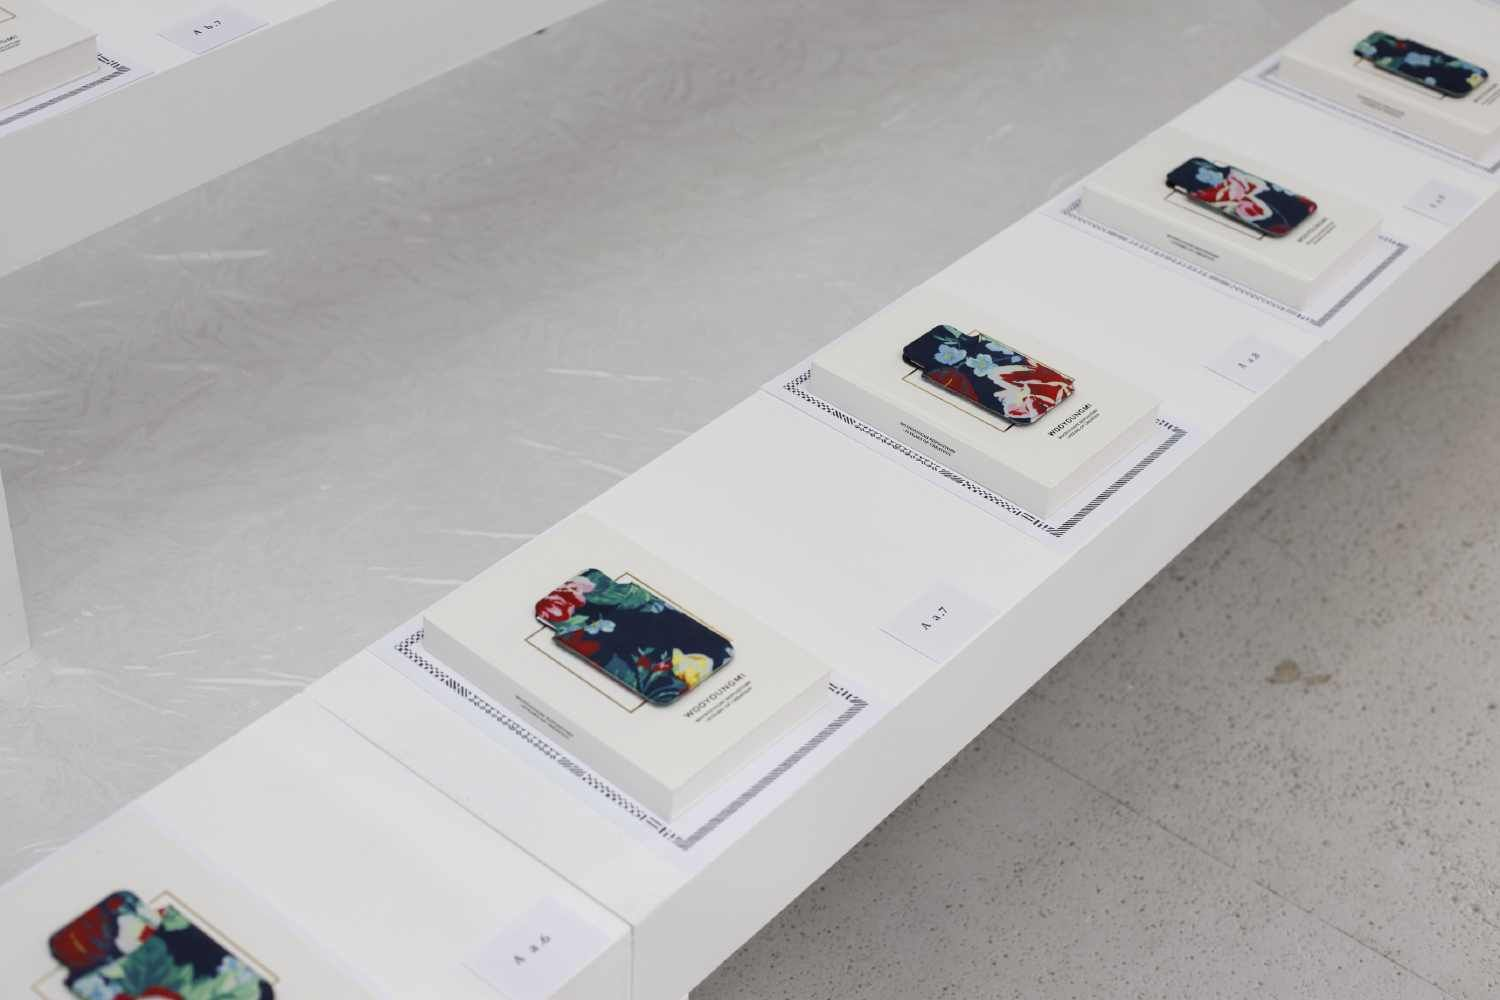 Wooyoungmi SS13 print iPhone cases on front row.